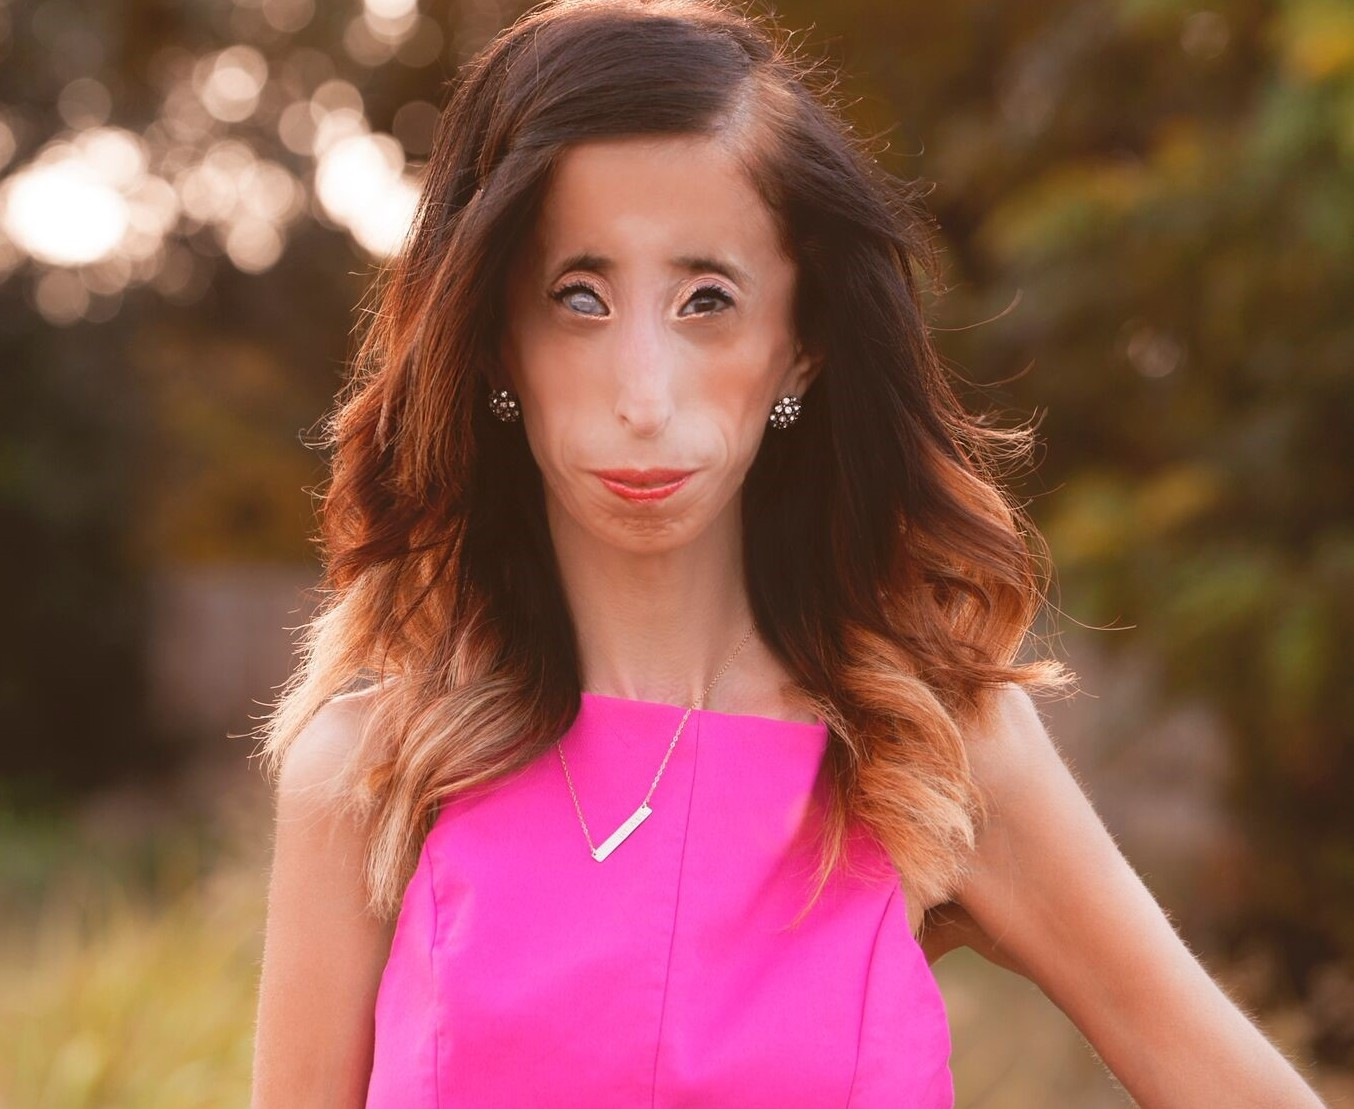 Lizzie Velasquez talks to us about facing bullies, staying positive, and defining your true self